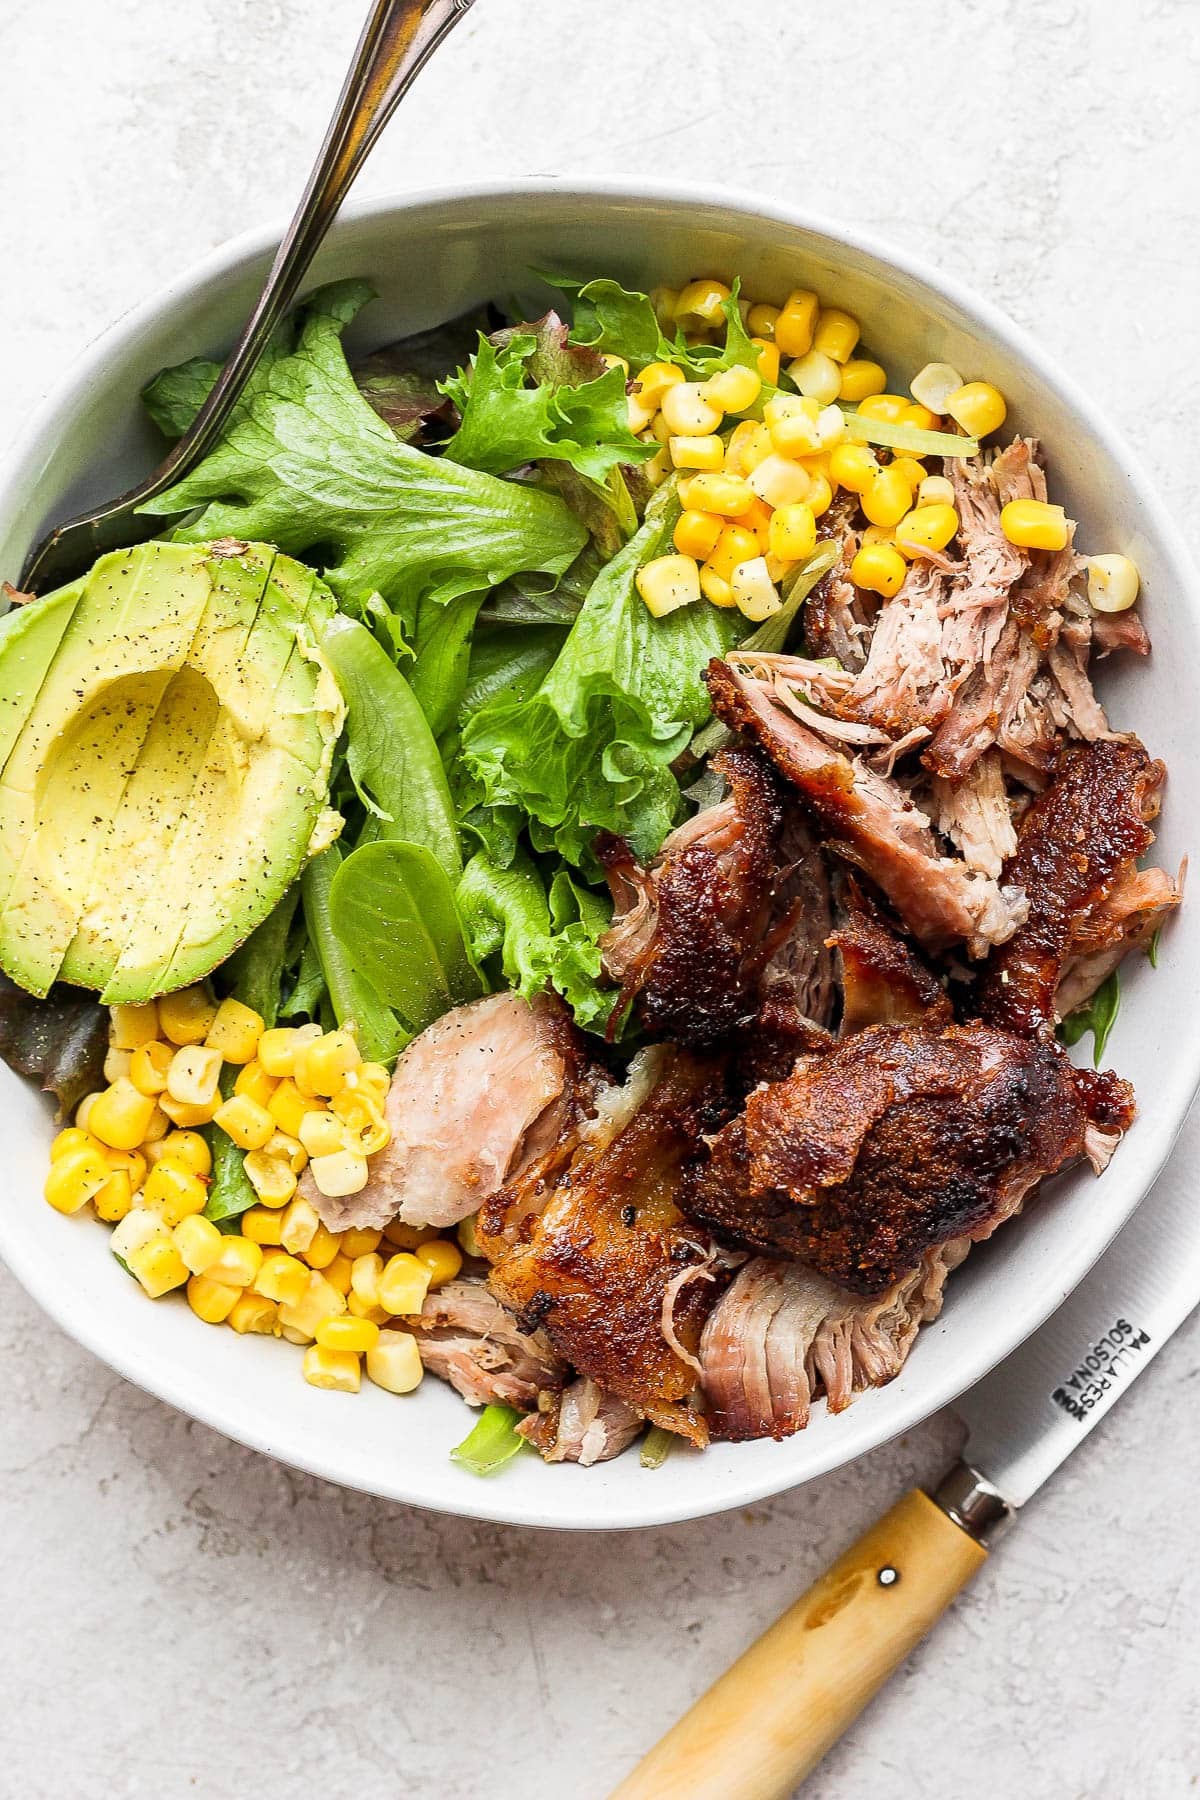 A pulled pork salad in a bowl with corn and avocado.